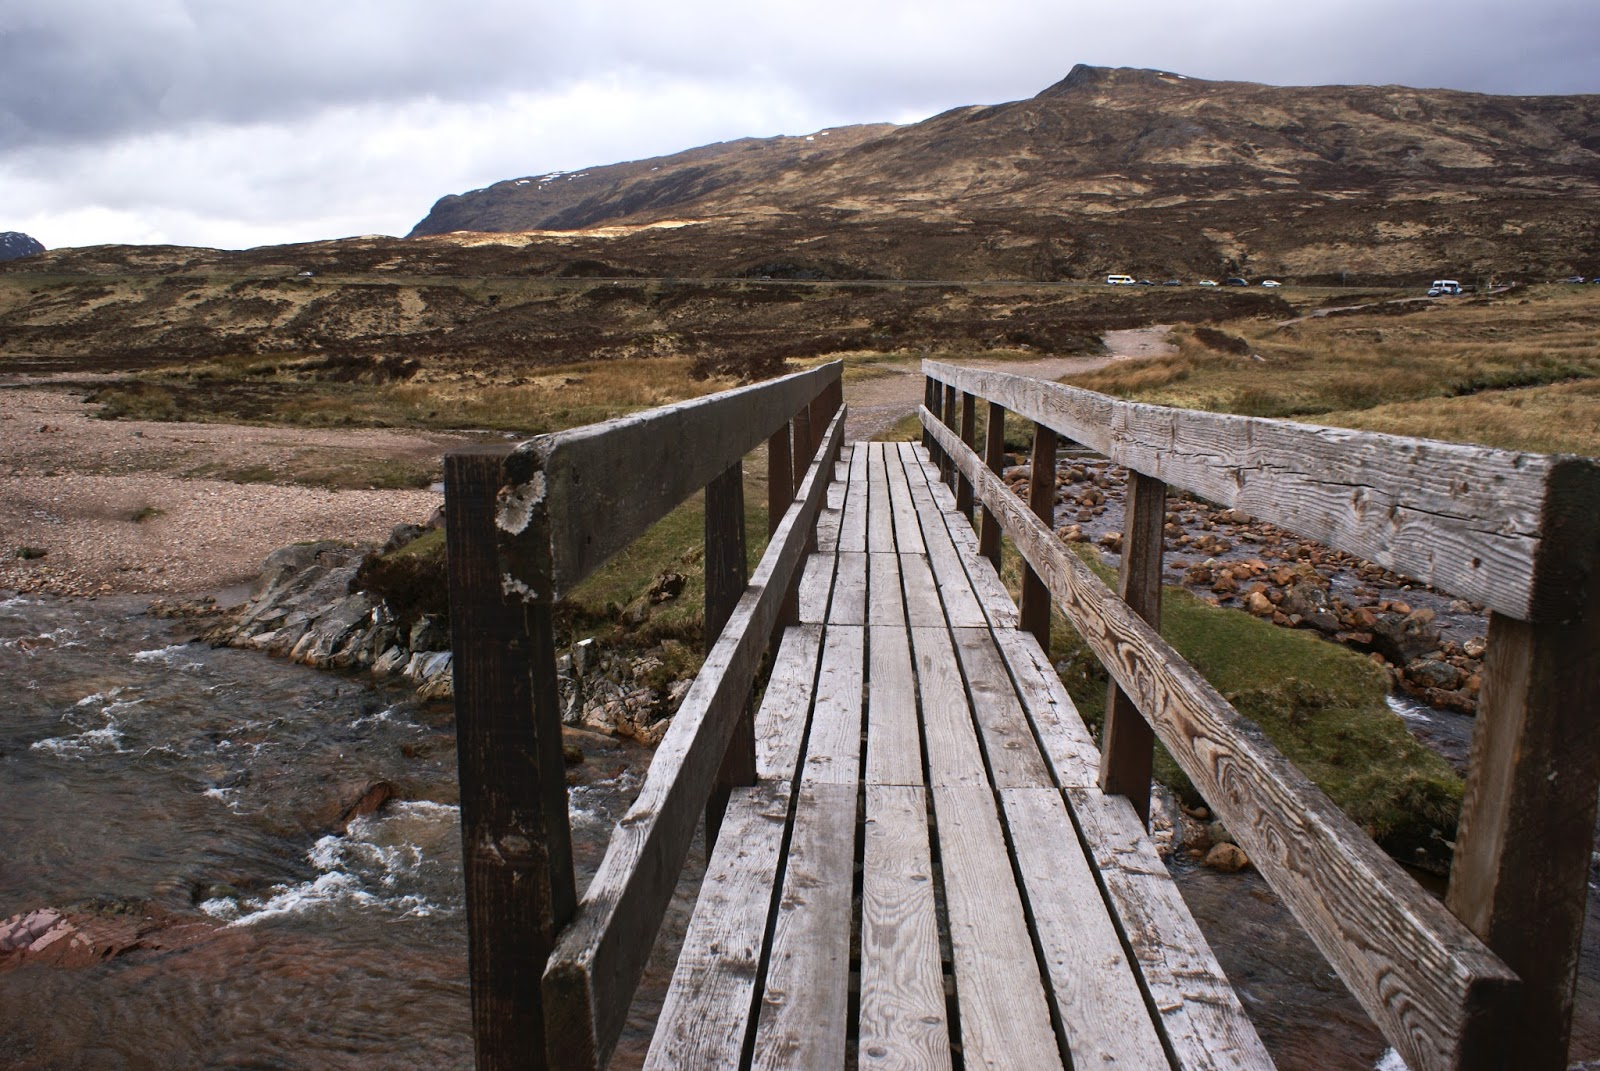 glen coe highlands bridge Altnafeadh scotland united kingdom uk